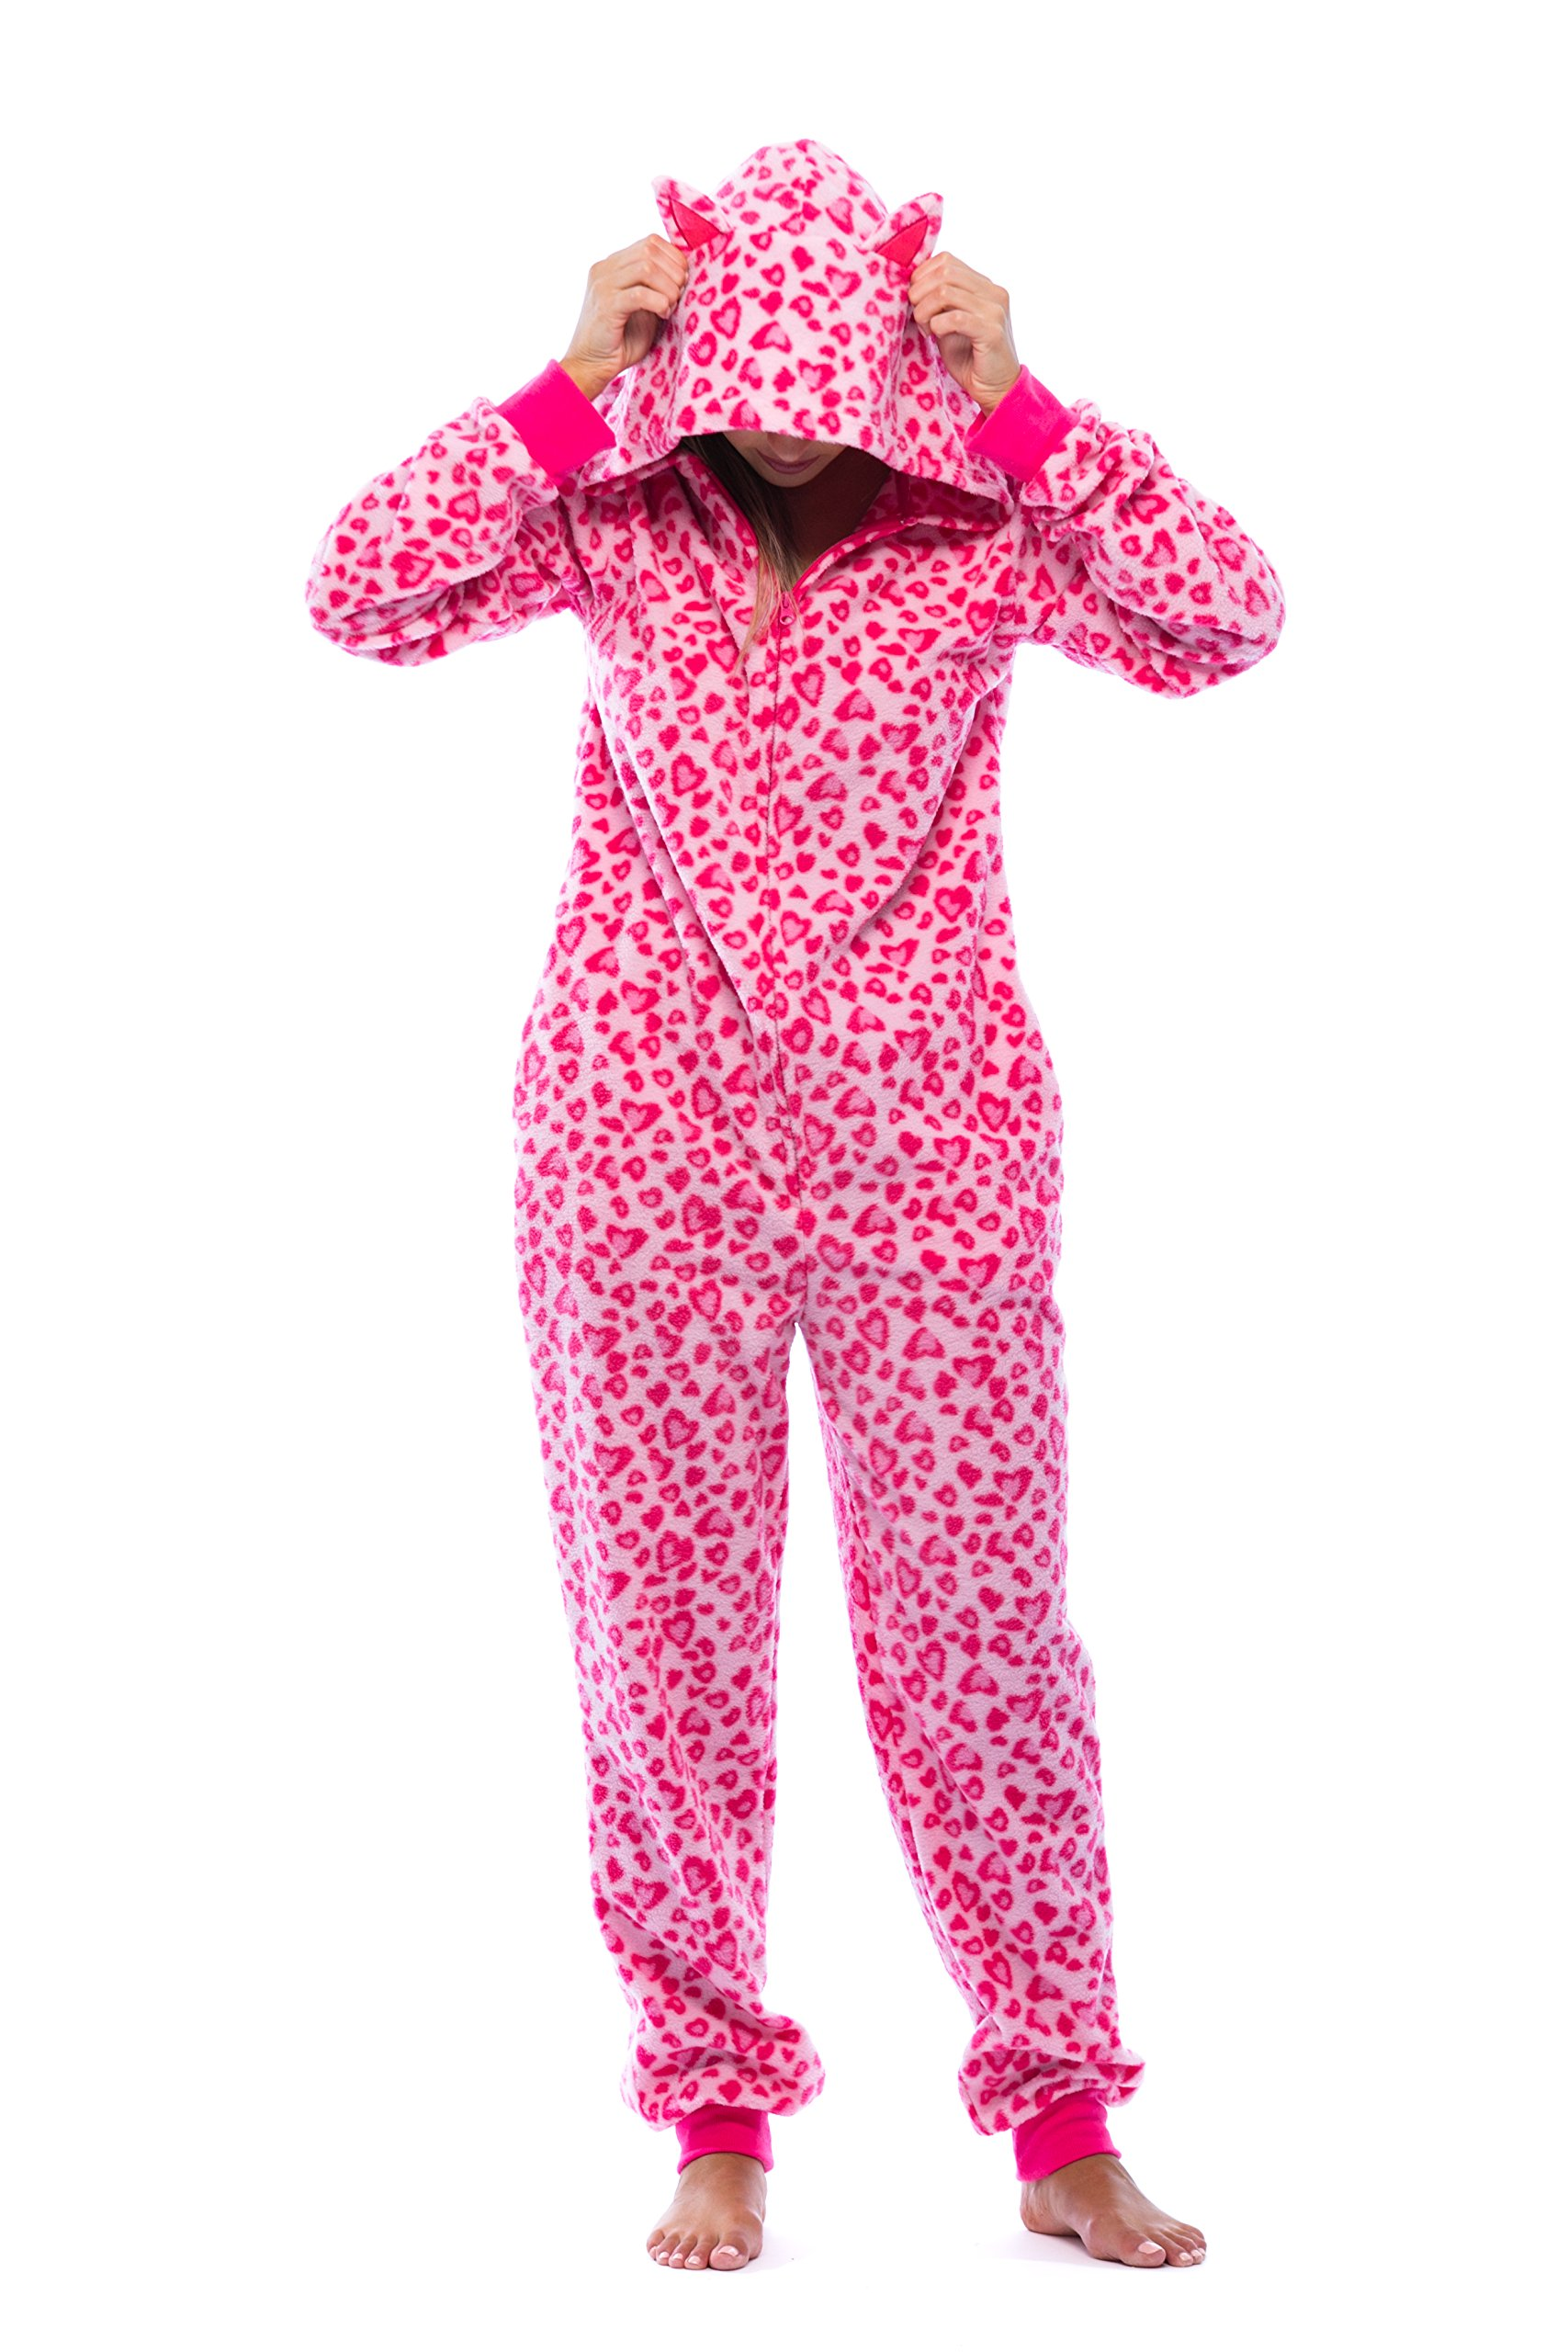 Just Love 6453-10215-M Adult Onesie With Animal Prints/Pajamas by Just Love (Image #1)